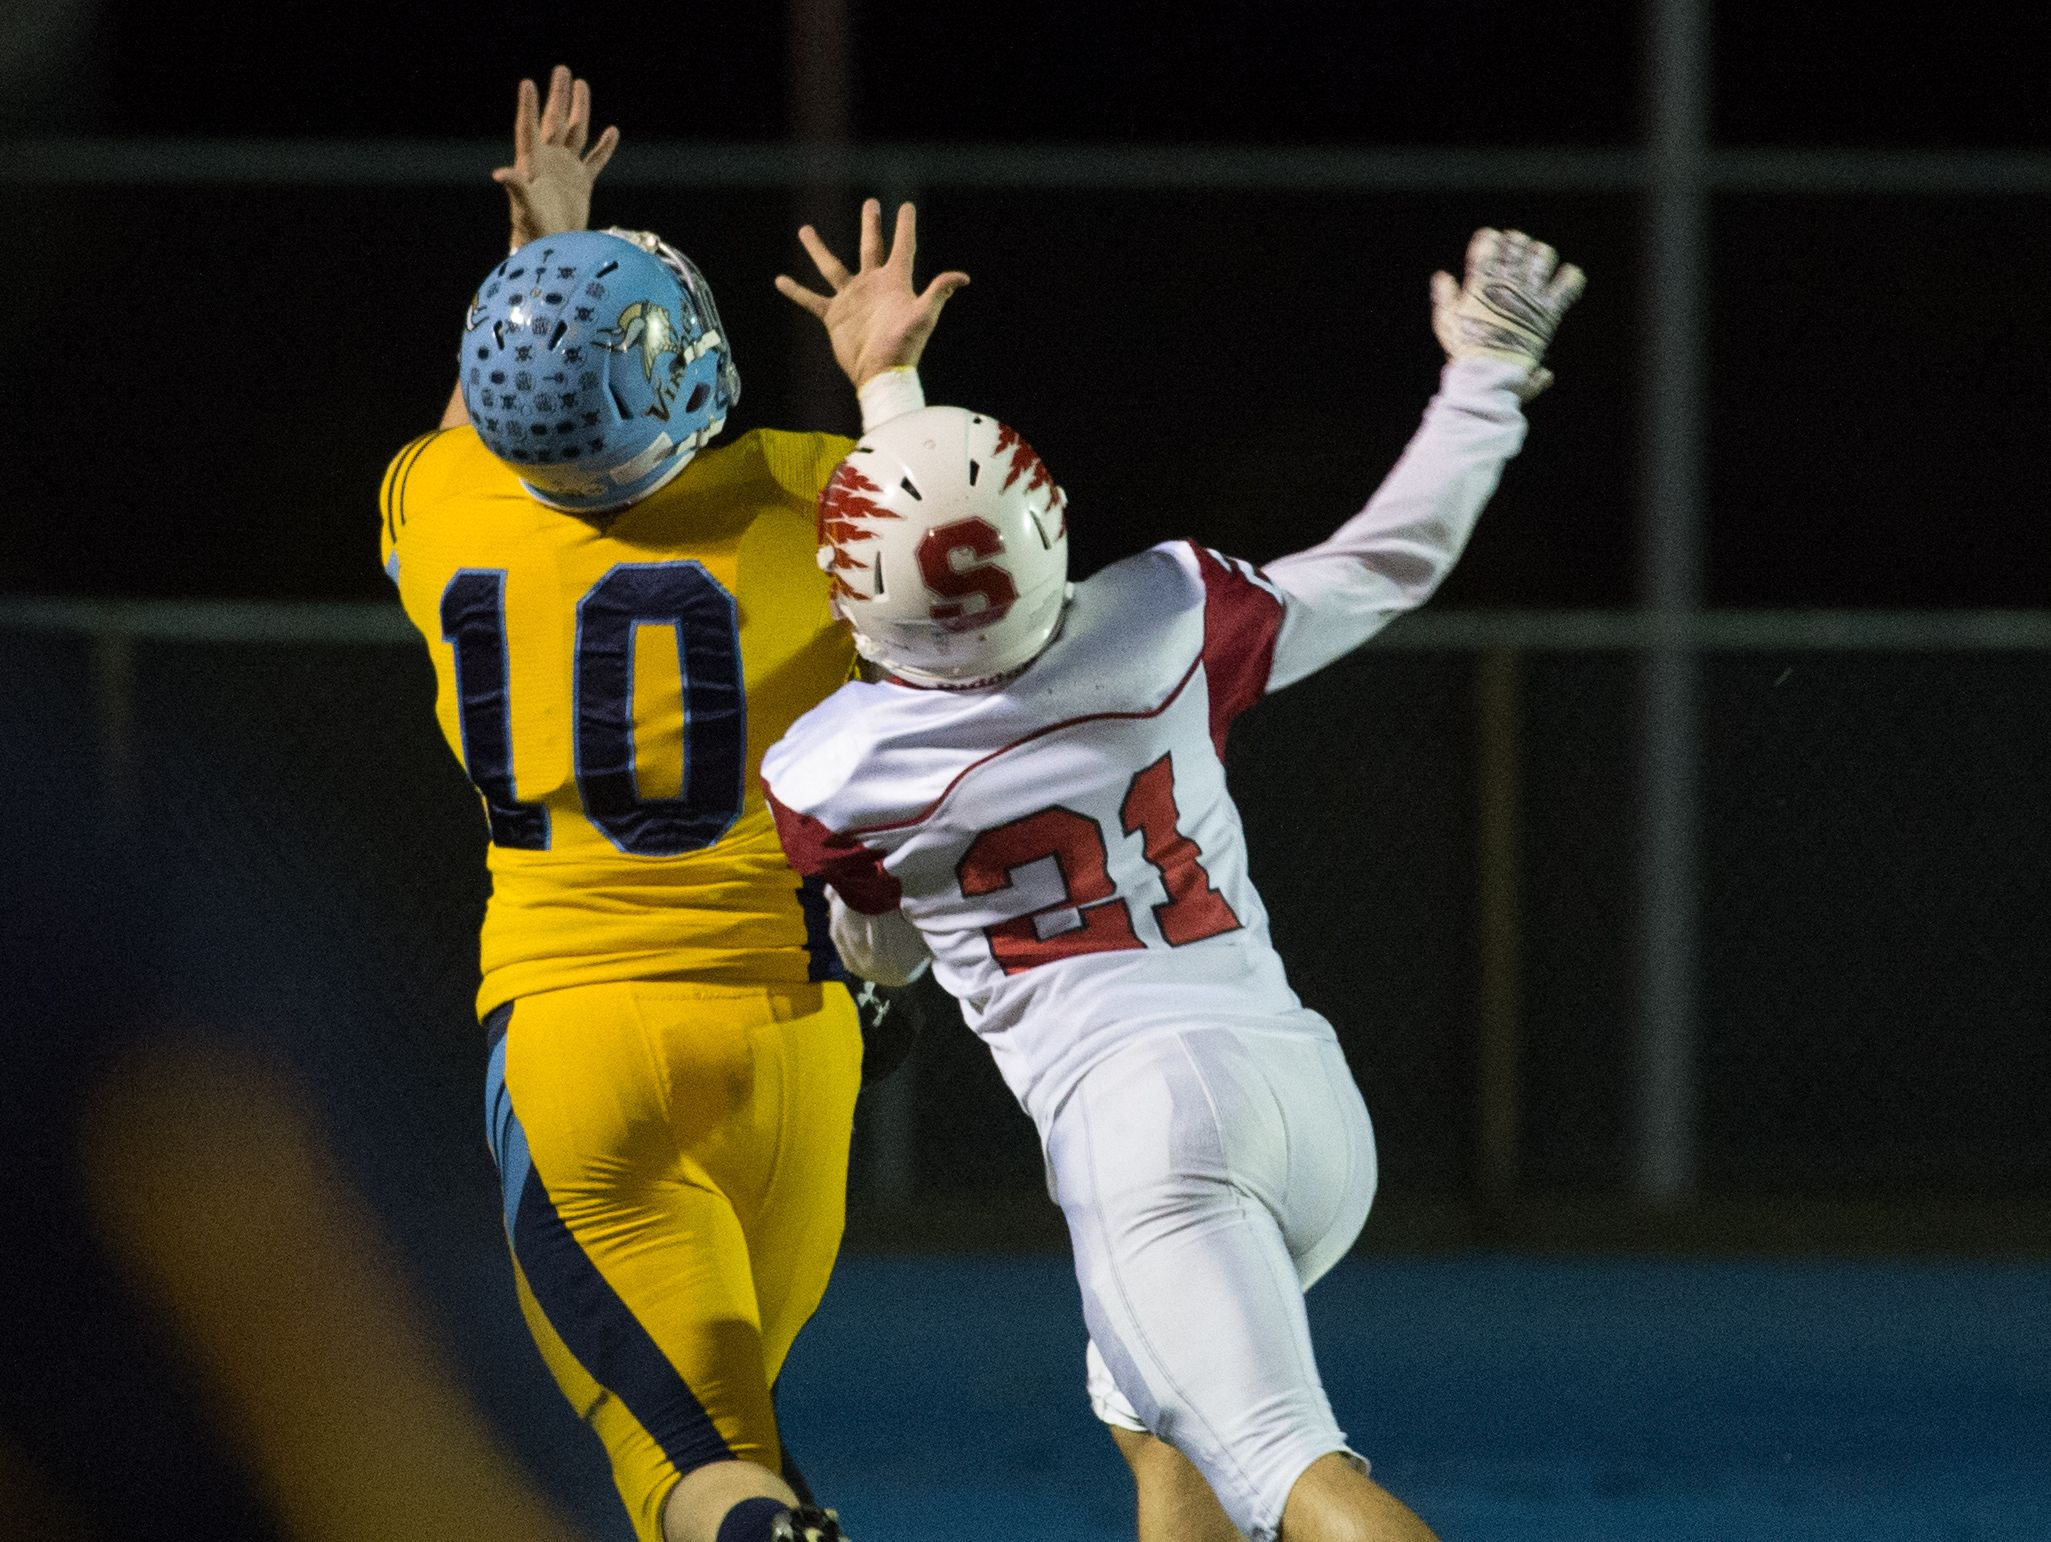 Cape Henlopen's Zachary Dale (10) catches a touchdown pass in the first quarter against Smyrna to make the score 6-0.